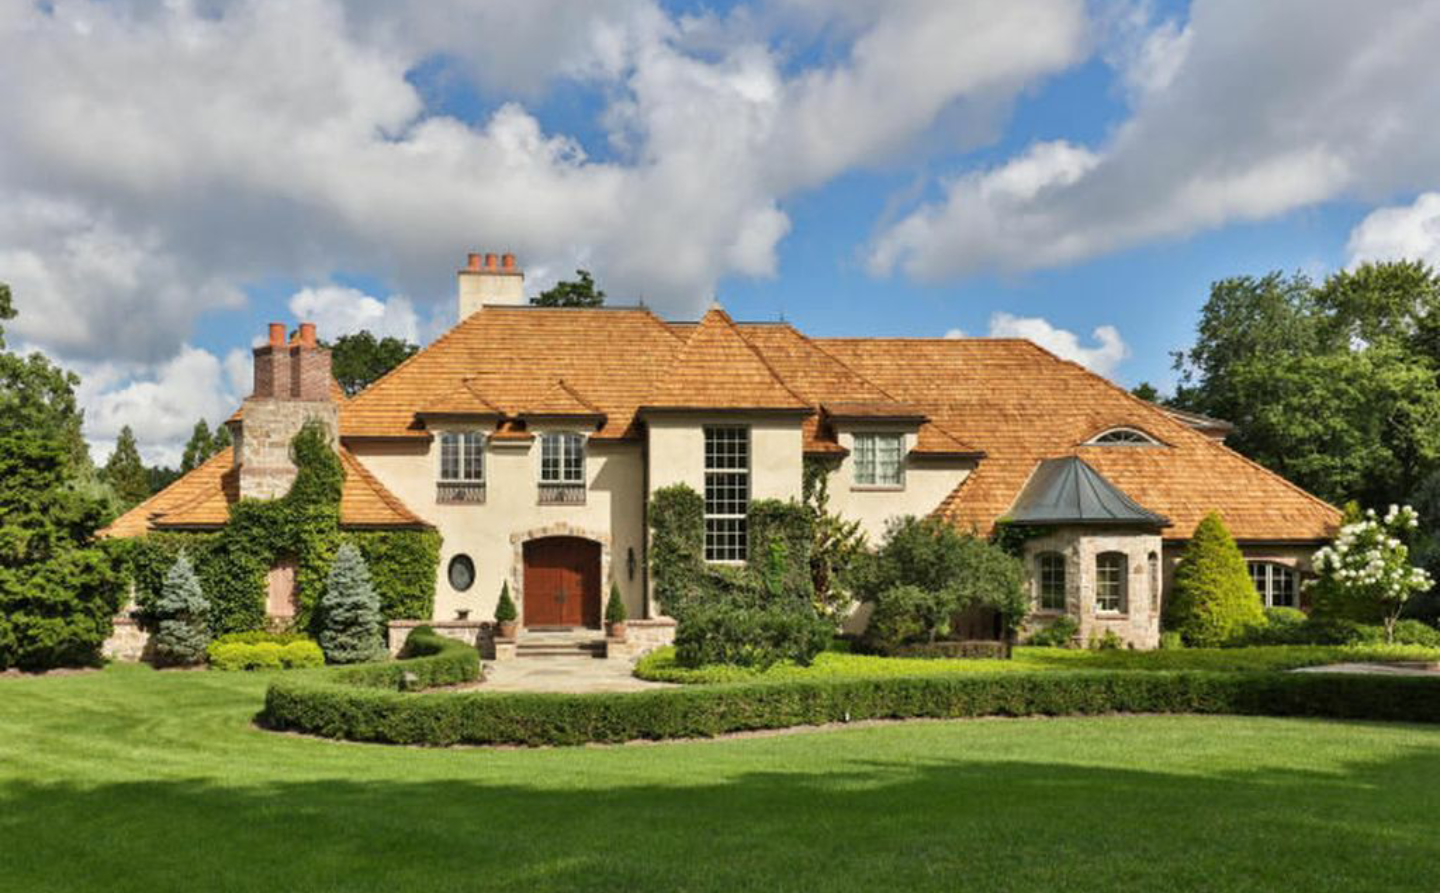 $4.2 Million French Country Home In Rumson, NJ